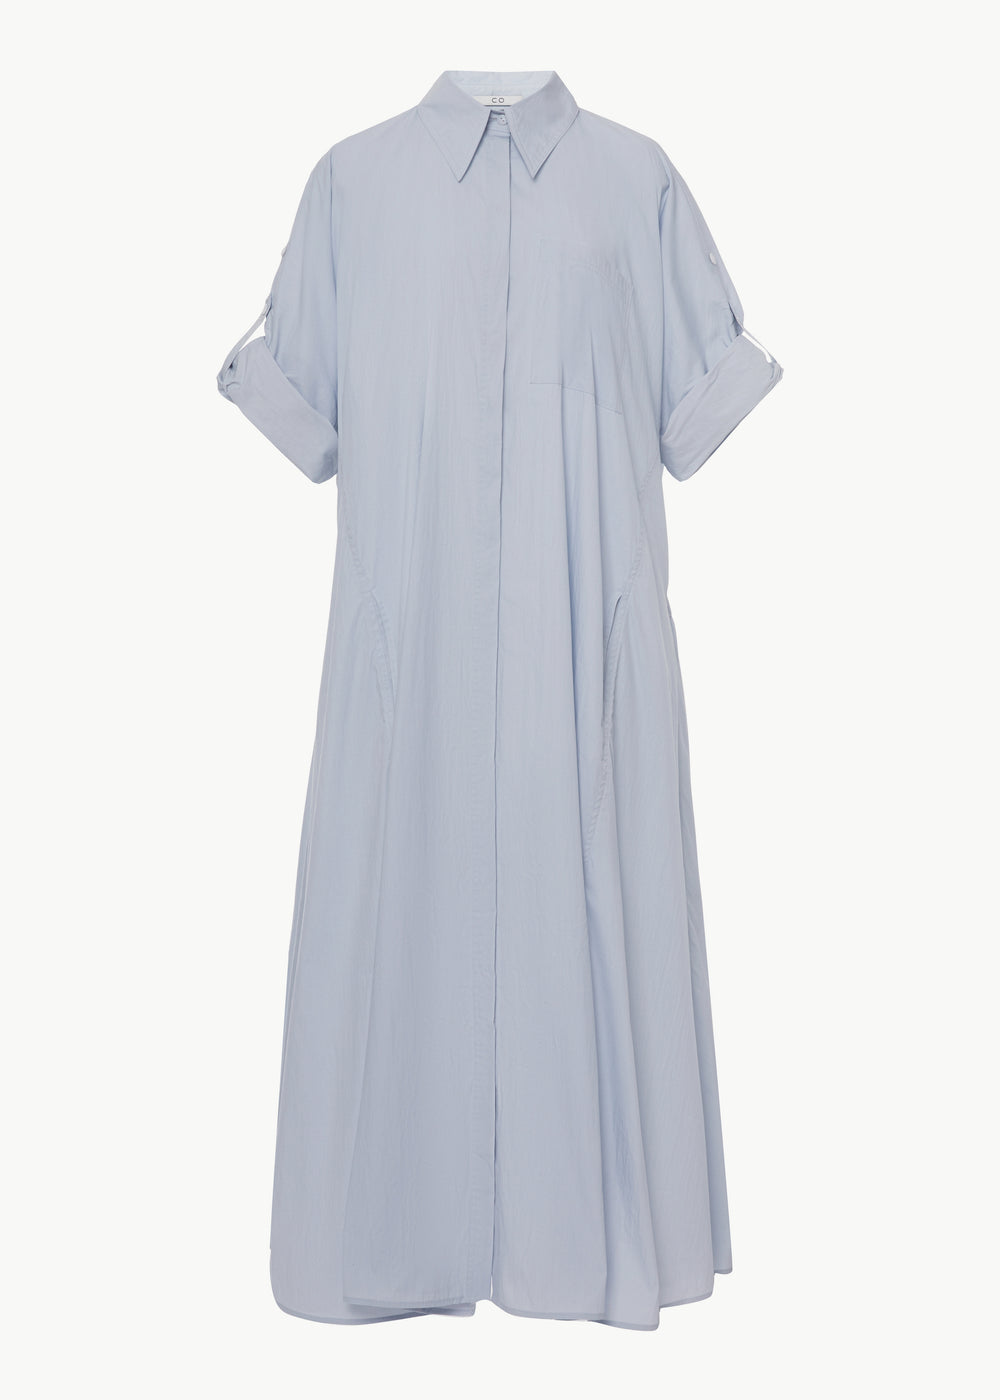 Rolled Sleeve Shirtdress in Cotton Nylon - Blue - CO